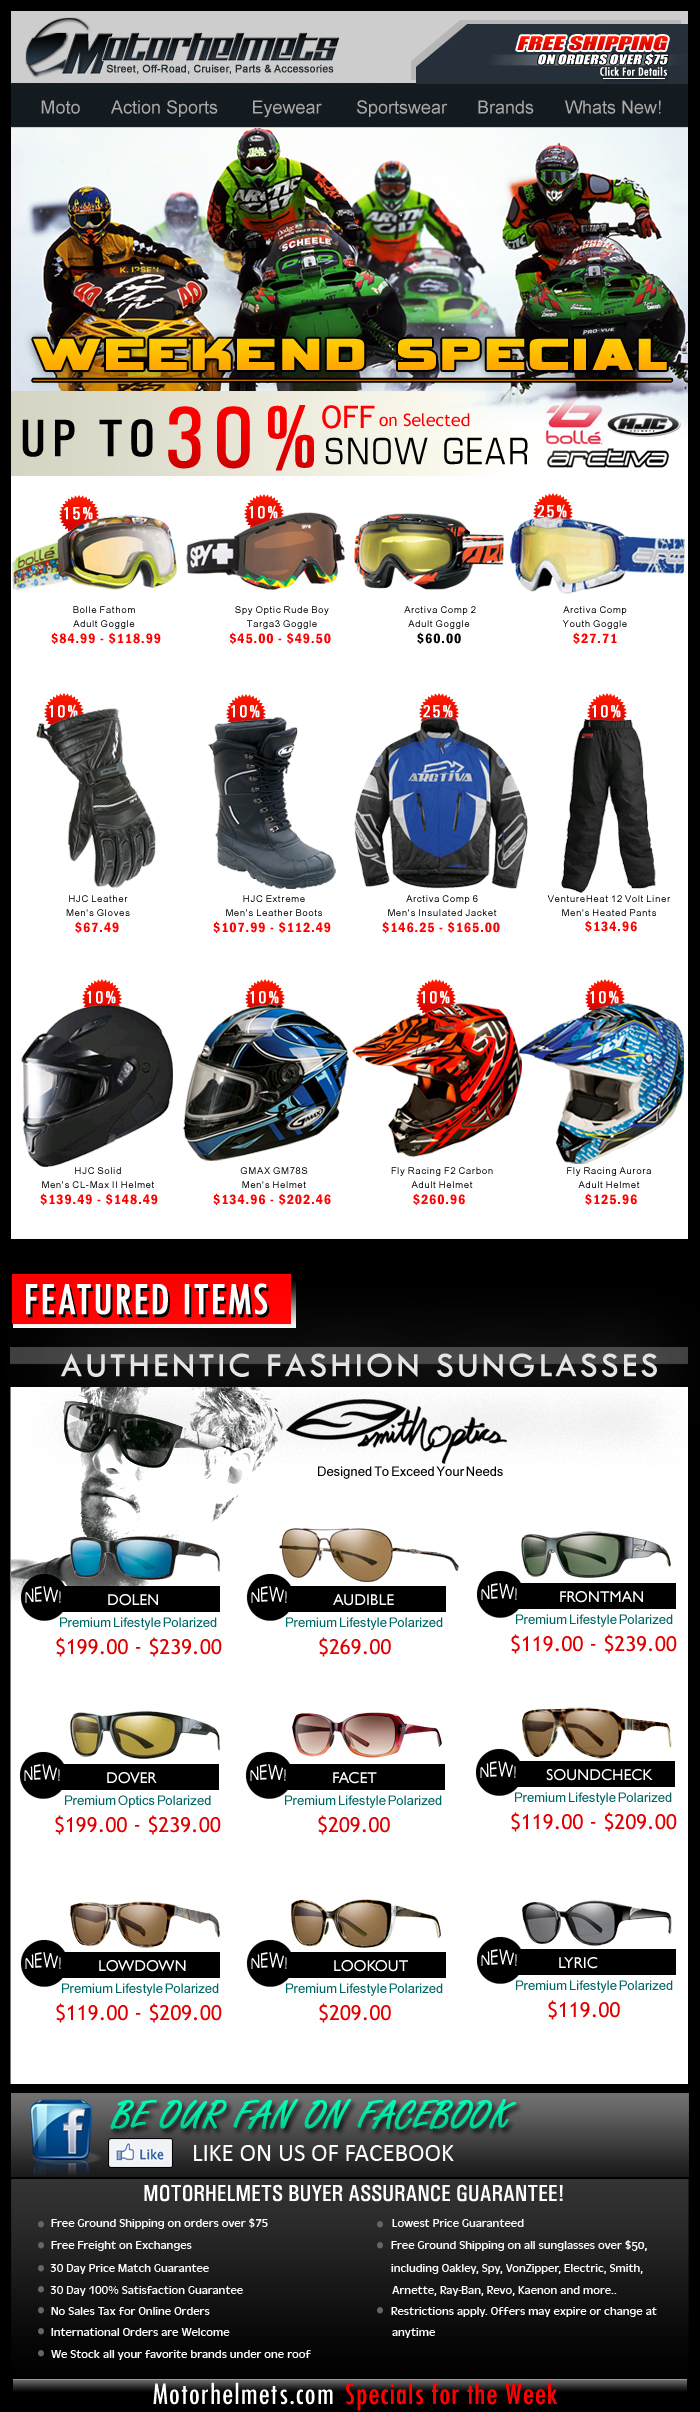 Save 10% off on every purchase of the 2014 Shoei MX & Street Helmets!